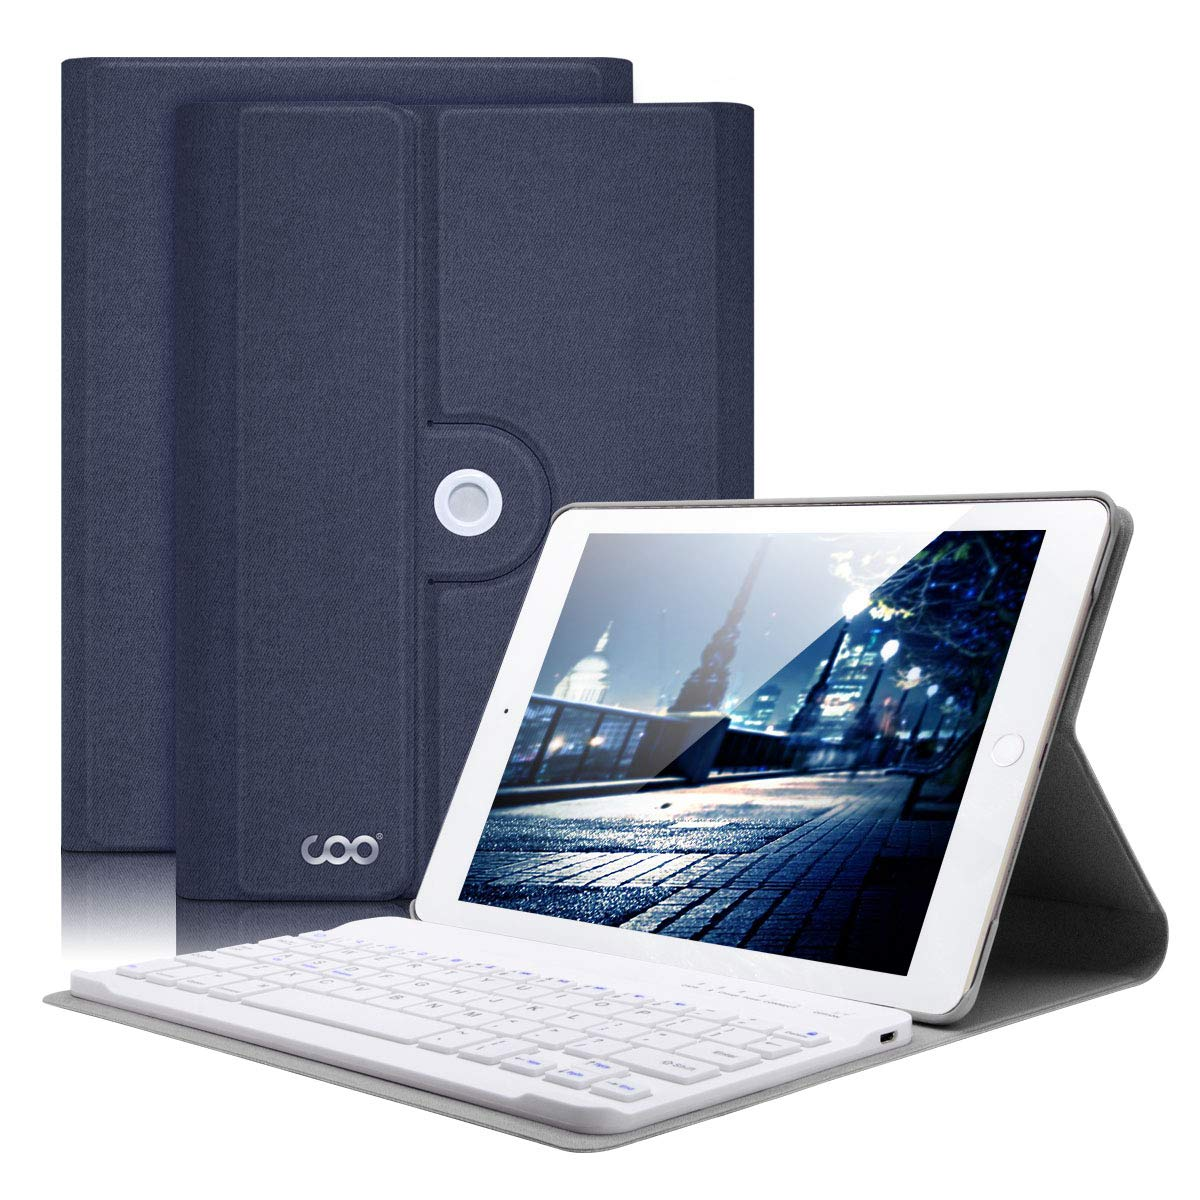 iPad Mini 4 Keyboard Case Only for Apple iPad Mini A1538/A1550, Wireless Bluetooth Keyboard & 360 Degree Rotation Magnetic Cover with Apple Sleep/Wake, Built-in Slide Proof Material - Adjust Any Angle COO